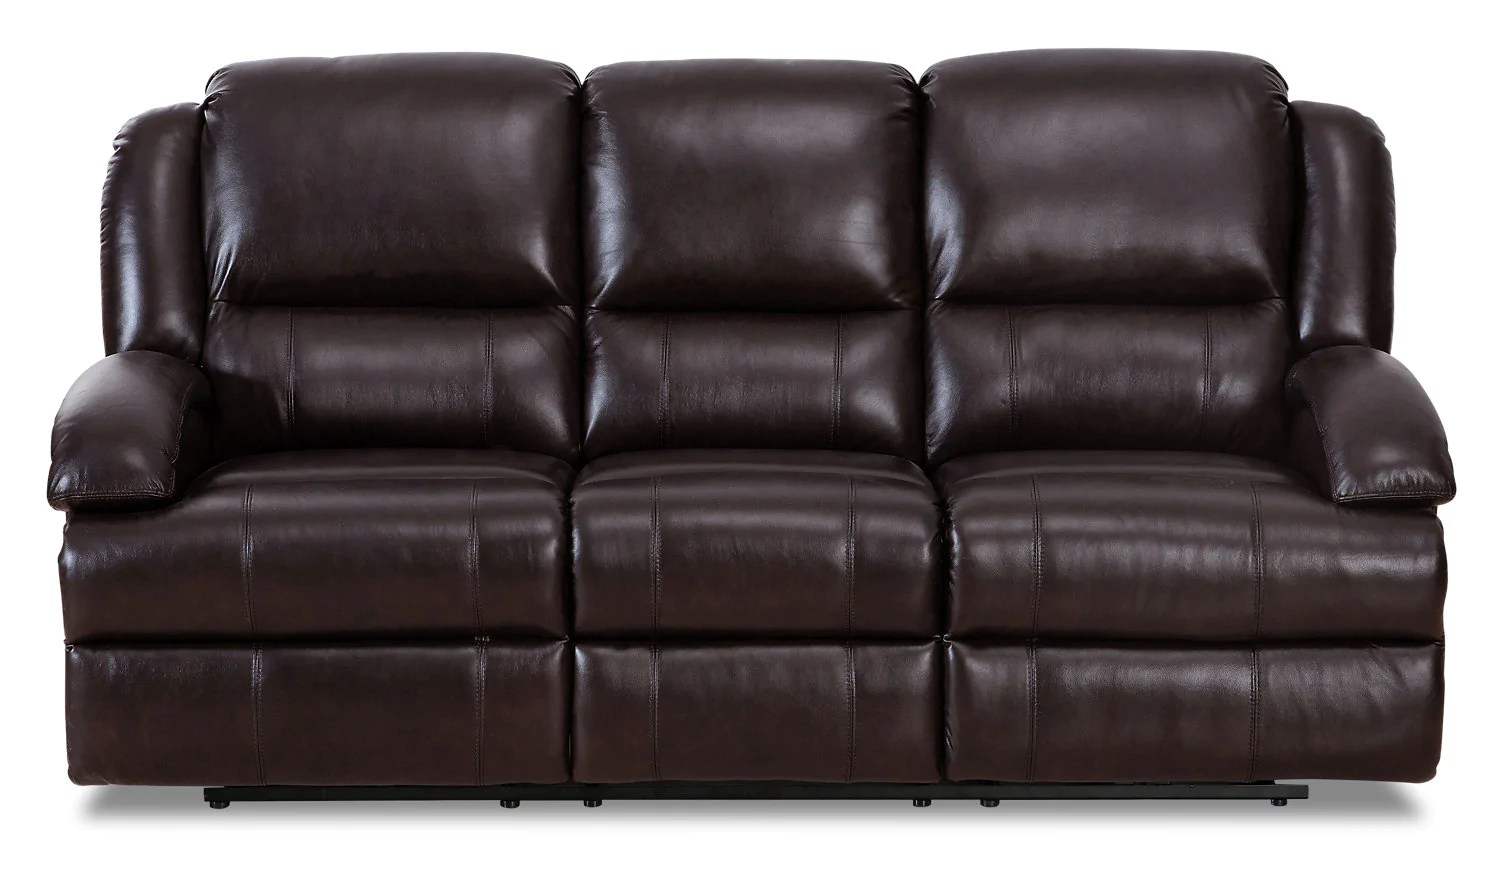 reclining sofa leather brown tight back sectional with chaise giovanni genuine power lumbar d dark brownsofa a inclinaison electrique en cuir veritable et zone lombaire